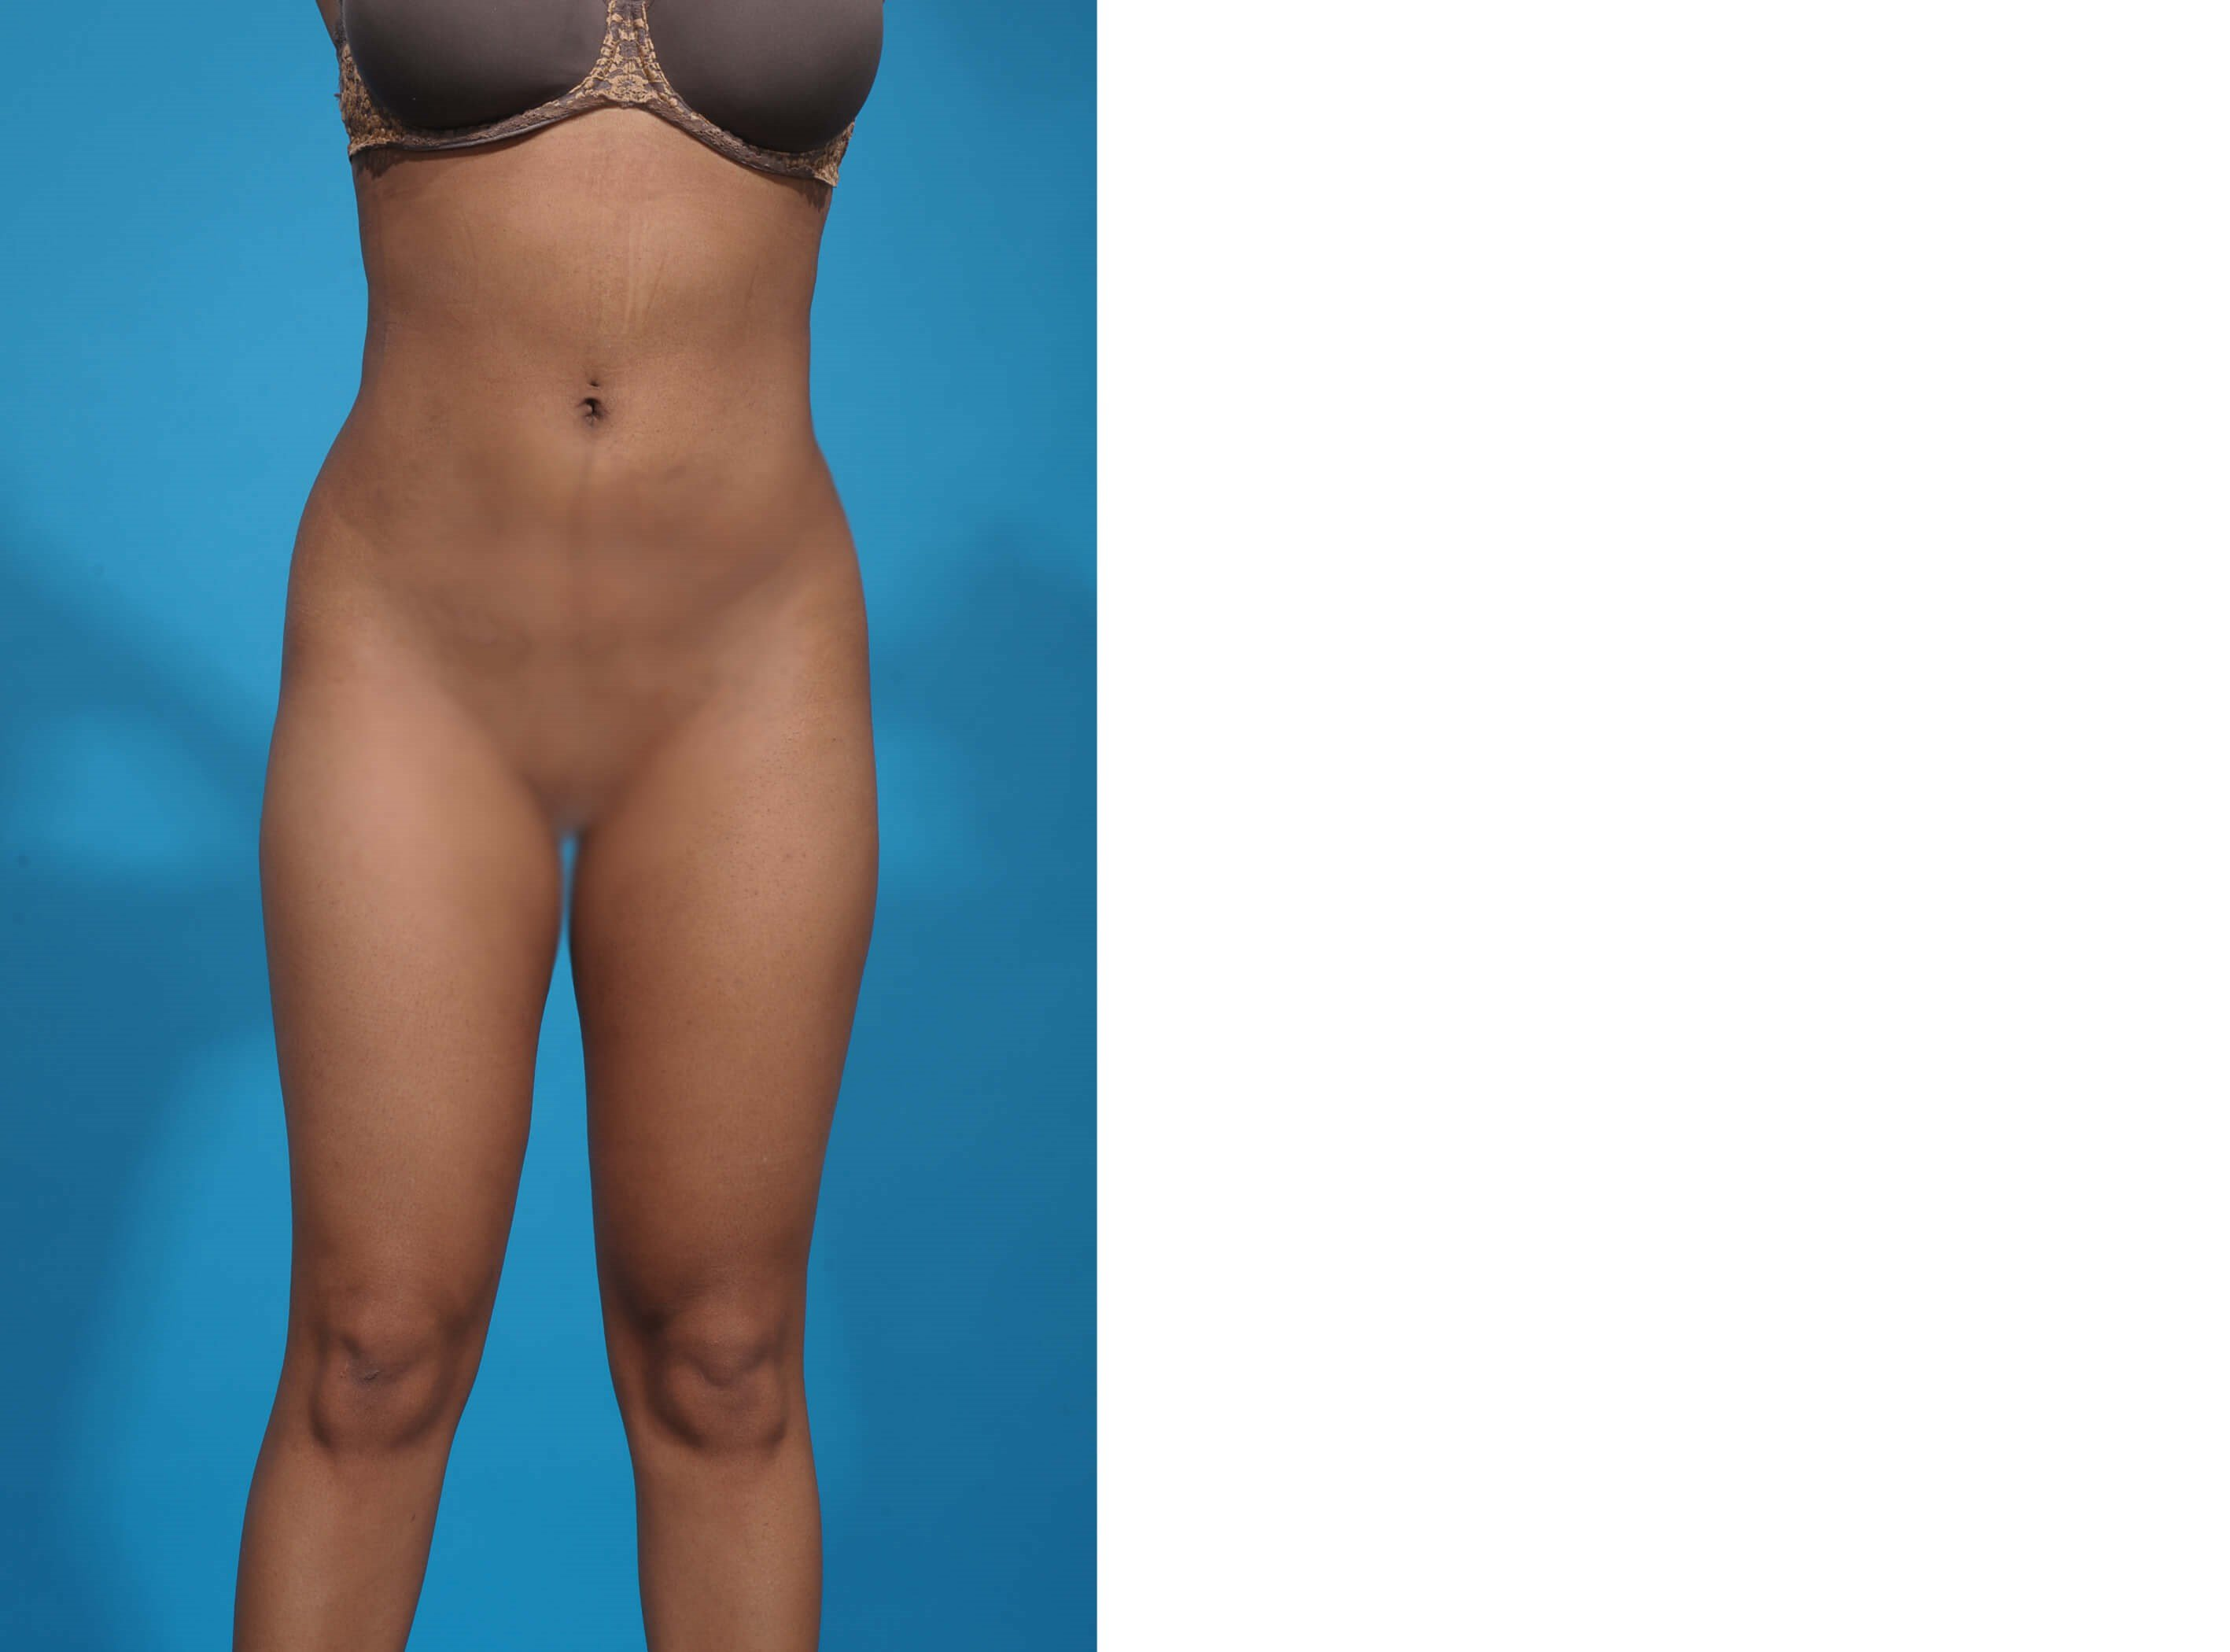 LIPOSUCTION CIRCUMFERENTIAL After